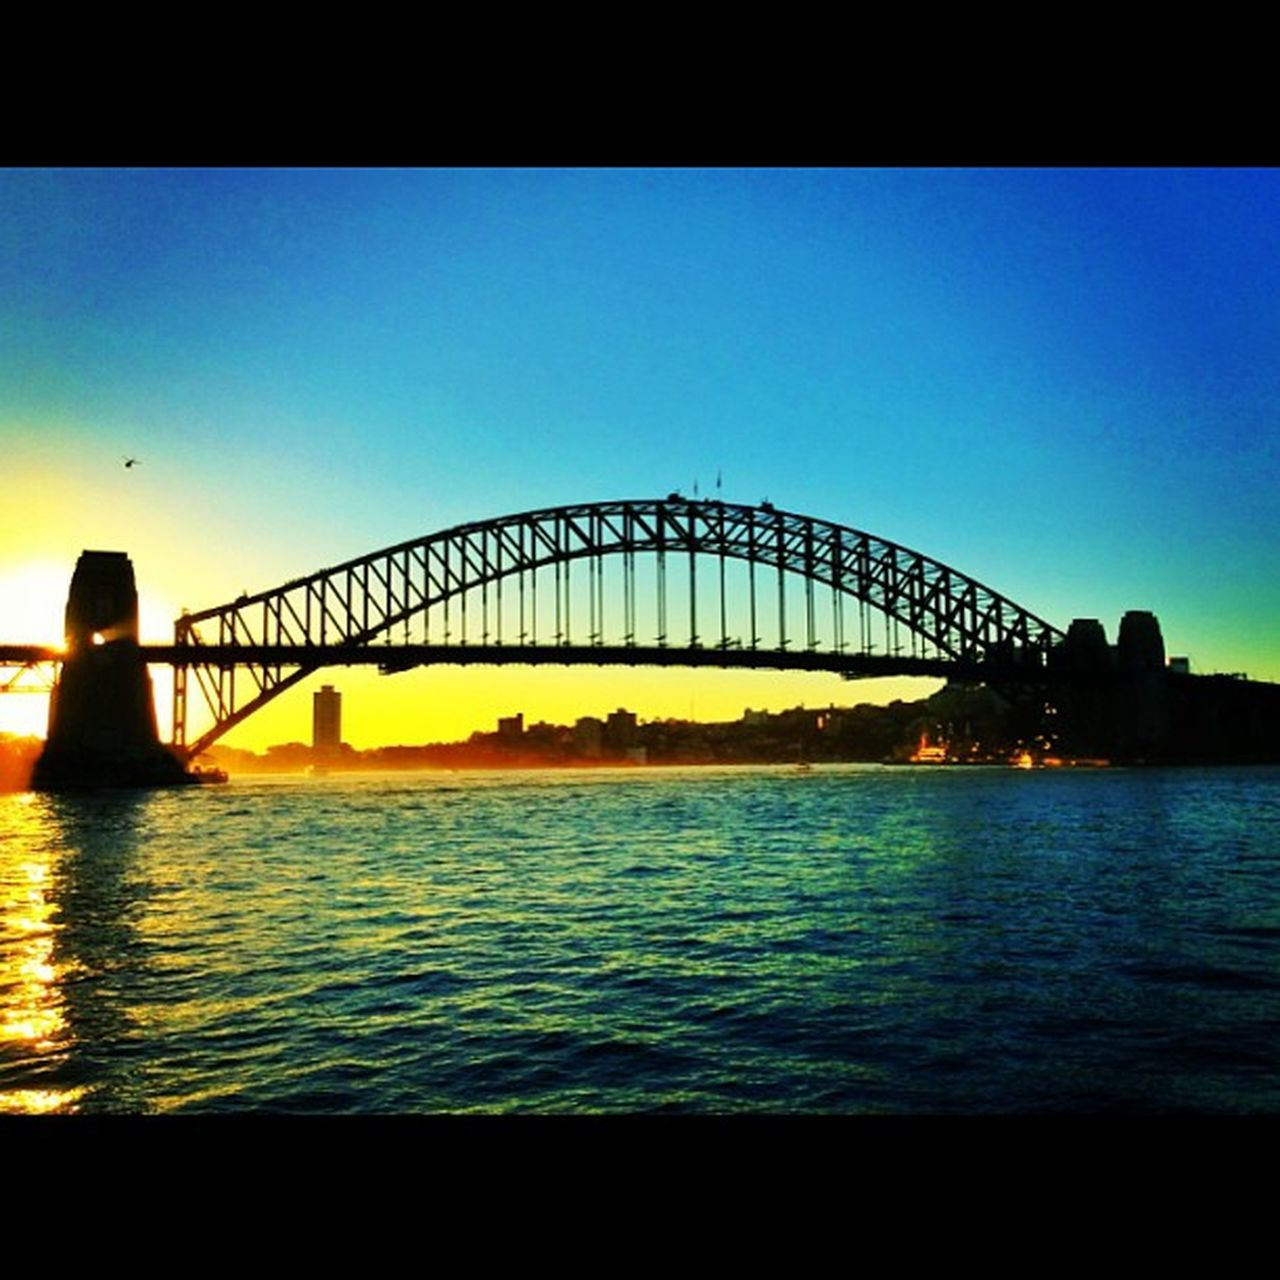 Landscape Landscape_shots Landscapehunter Iphonesia Igers IGDaily Instago Iphonesia Instanature Instagramhub Bridge Sydney Opéra Operahouse Evening Sunset Silhouette Shadow River Water Harm Sky Blue Sun